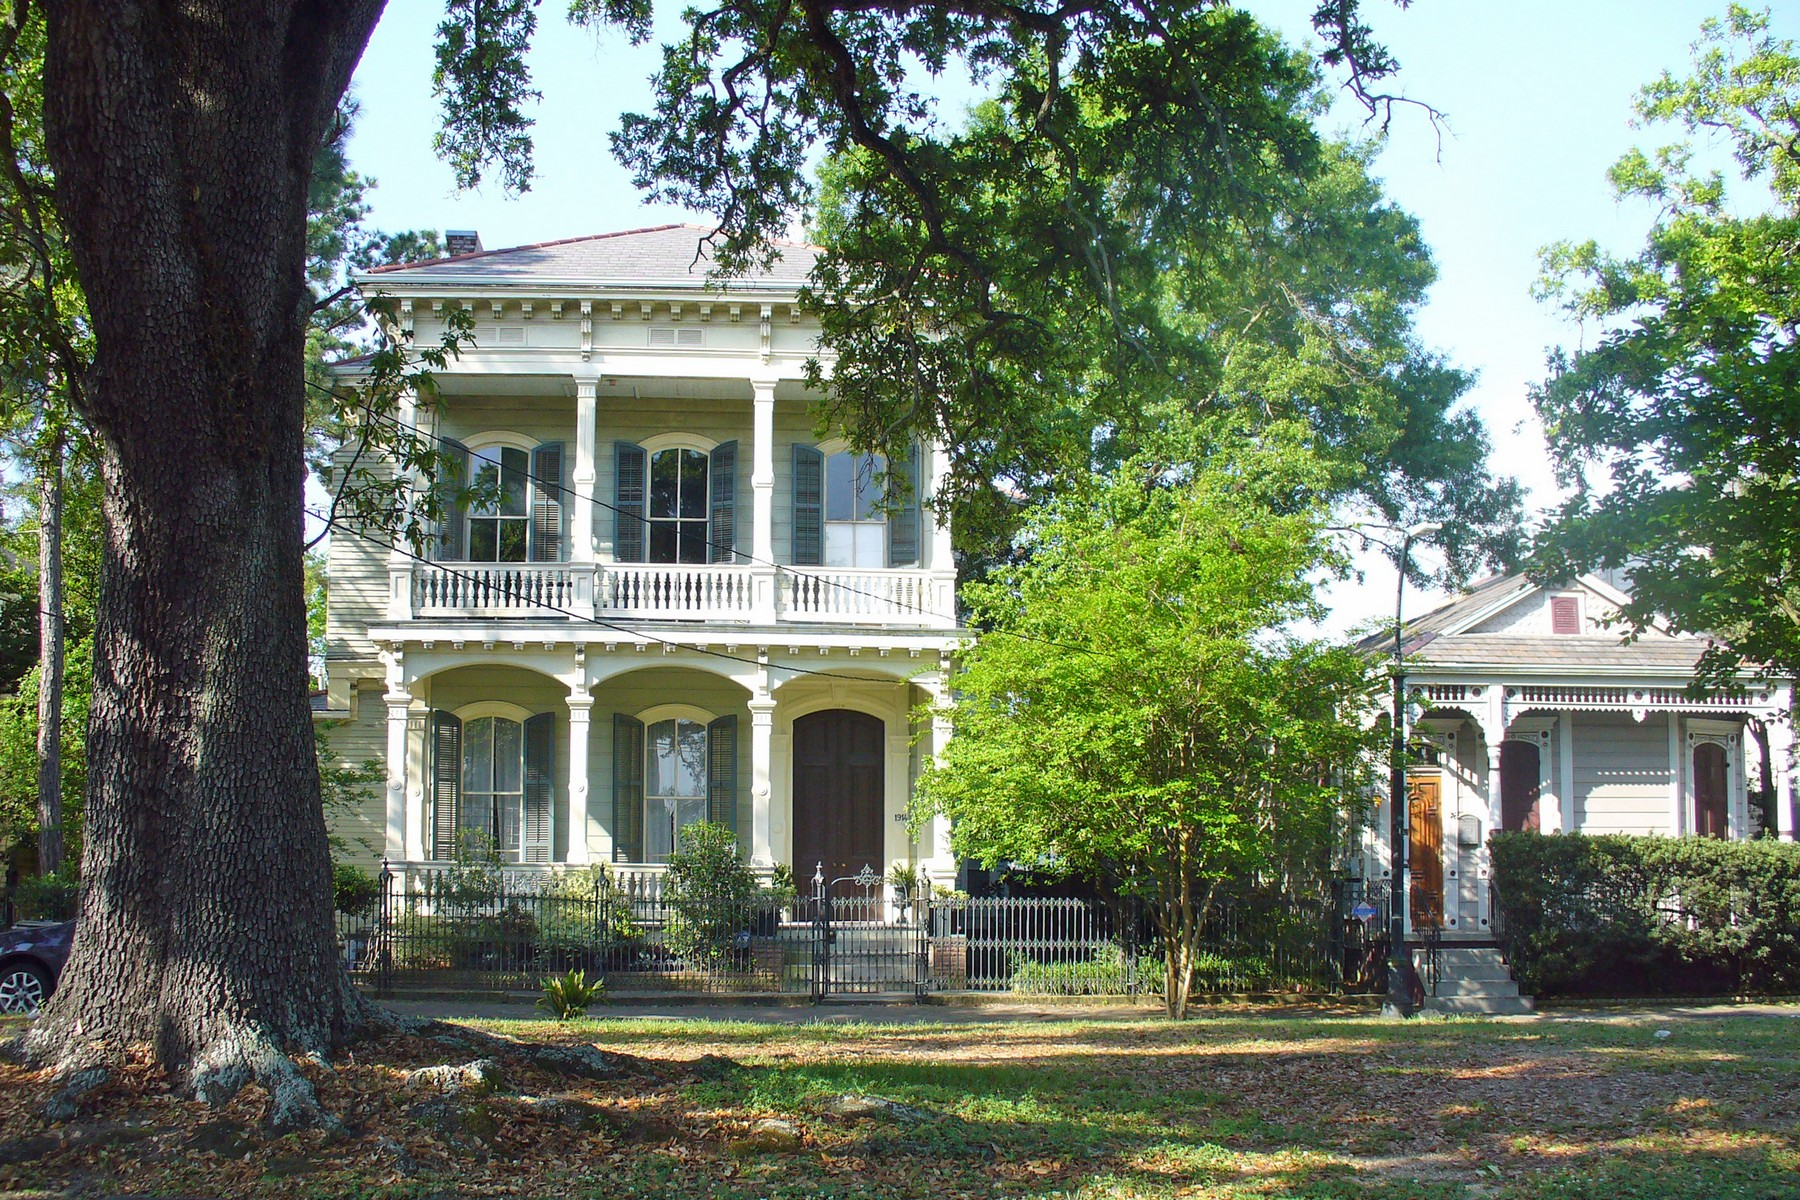 Single Family Home for Sale at The Henry Howard House 1914 Esplanade Ave New Orleans, Louisiana 70116 United States